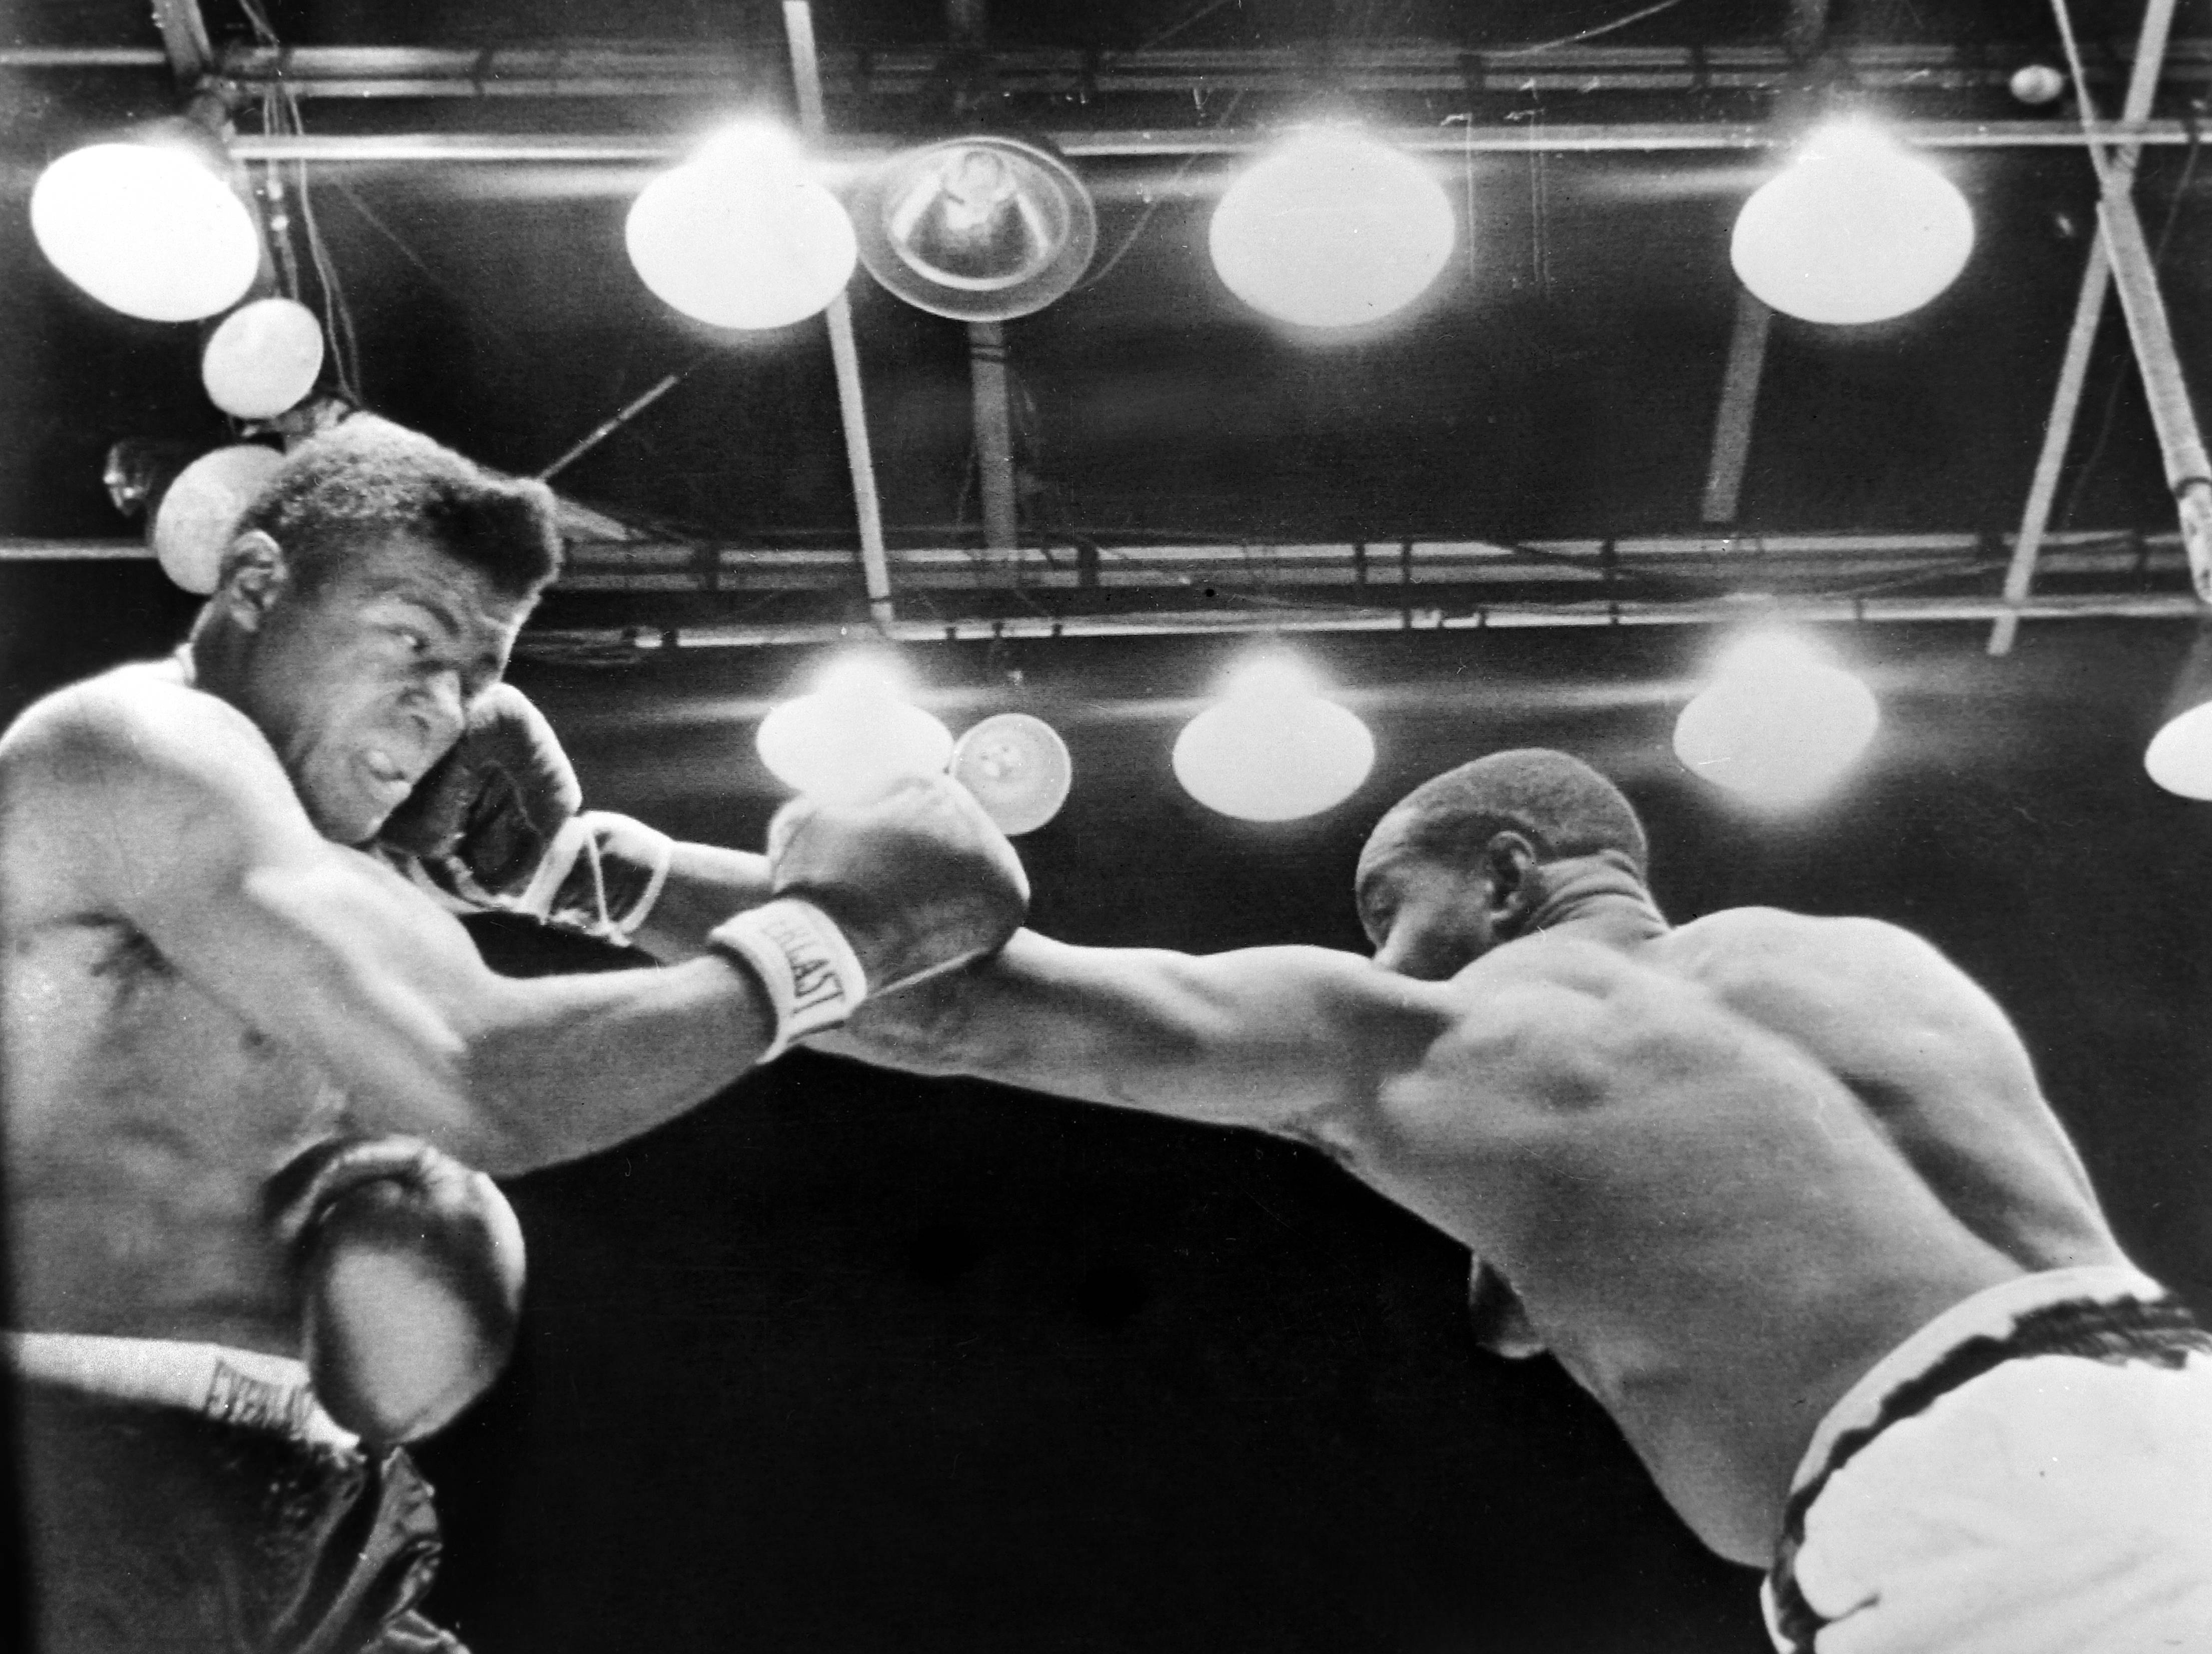 26 SEPTEMBER 1962 SONNY LISTON KNOCKS OUT WORLD HEAVYWEIGHT TITLE HOLDER FLOYD PATTERSON IN 2 MINUTES AND 6 SECONDS TO BECOME THE NEW CHAMPION. COMISKEY PARK, CHICAGO, ILLINOIS, USA.